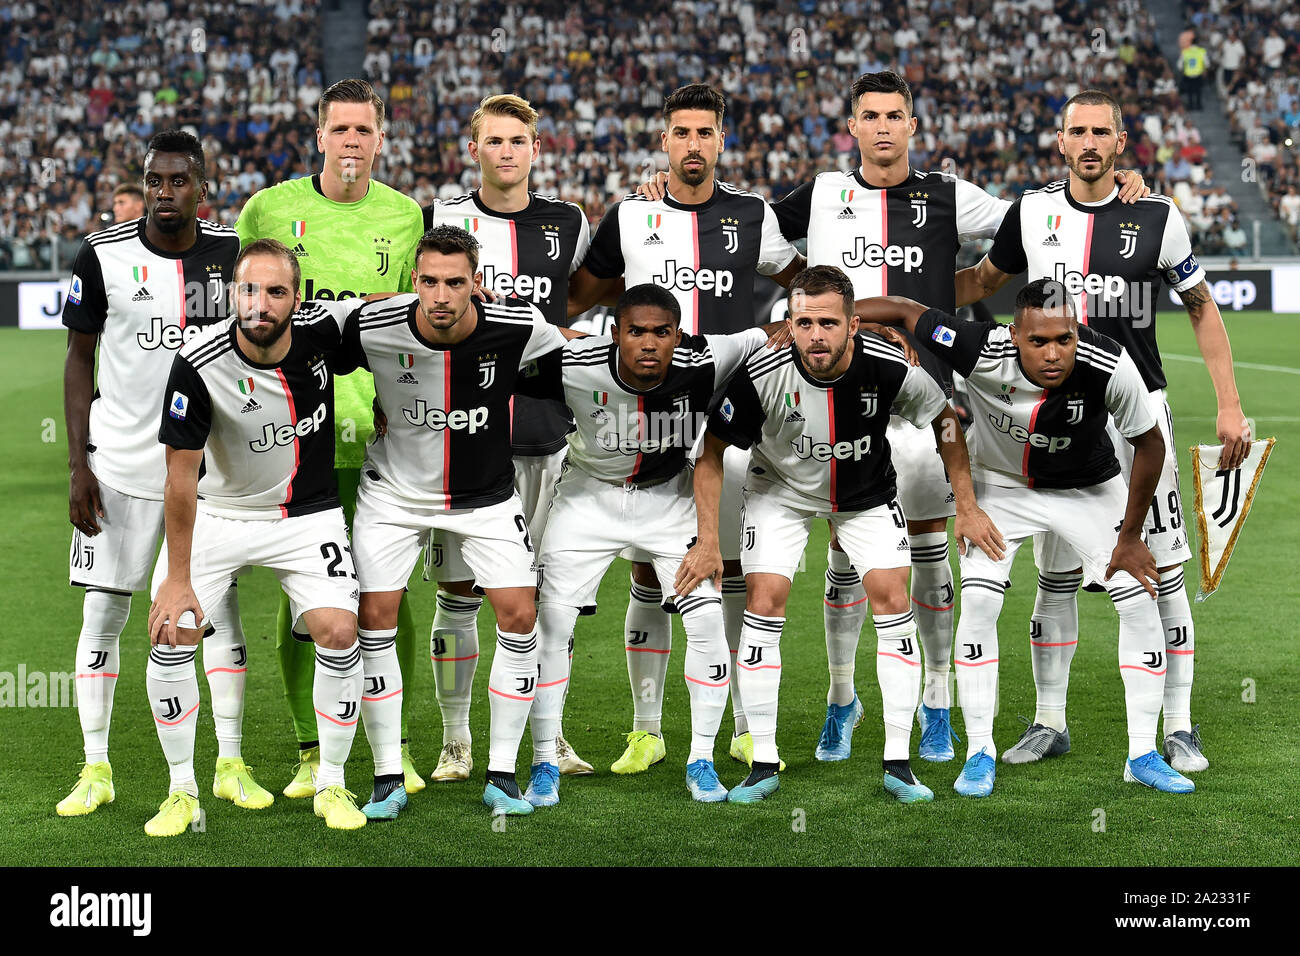 Juventus Team Photo High Resolution Stock Photography And Images Alamy